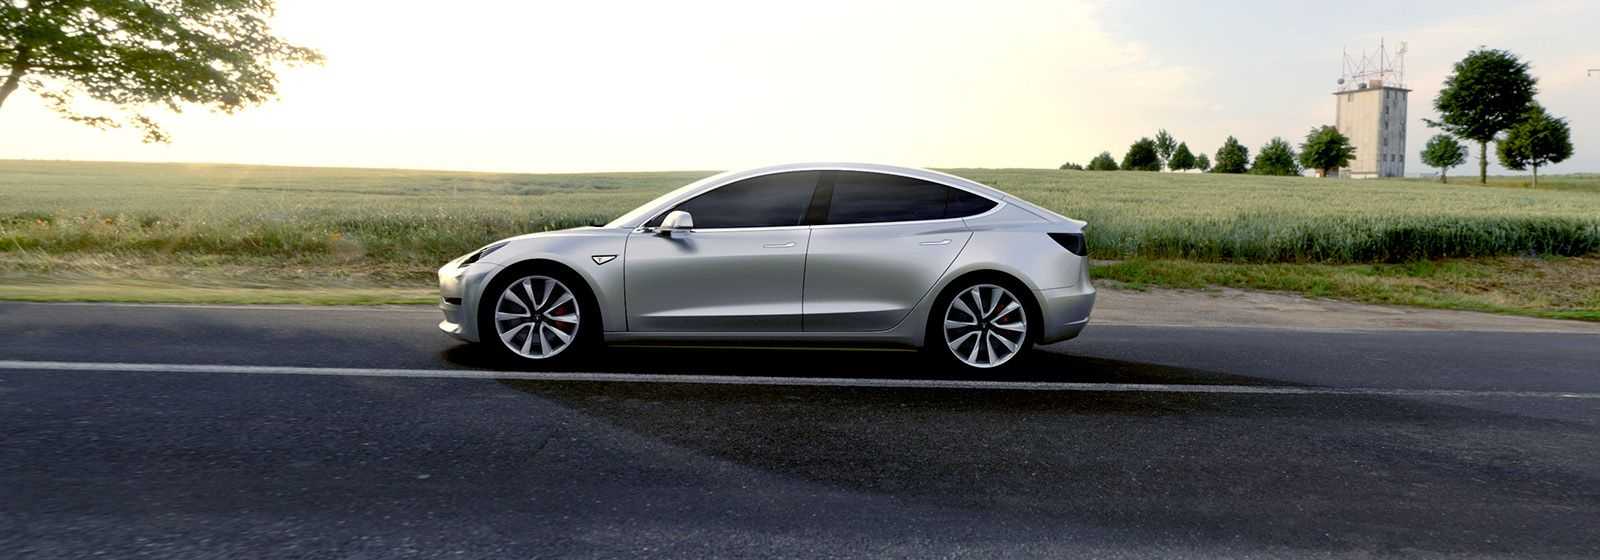 Tesla fever jolts interest in electric cars